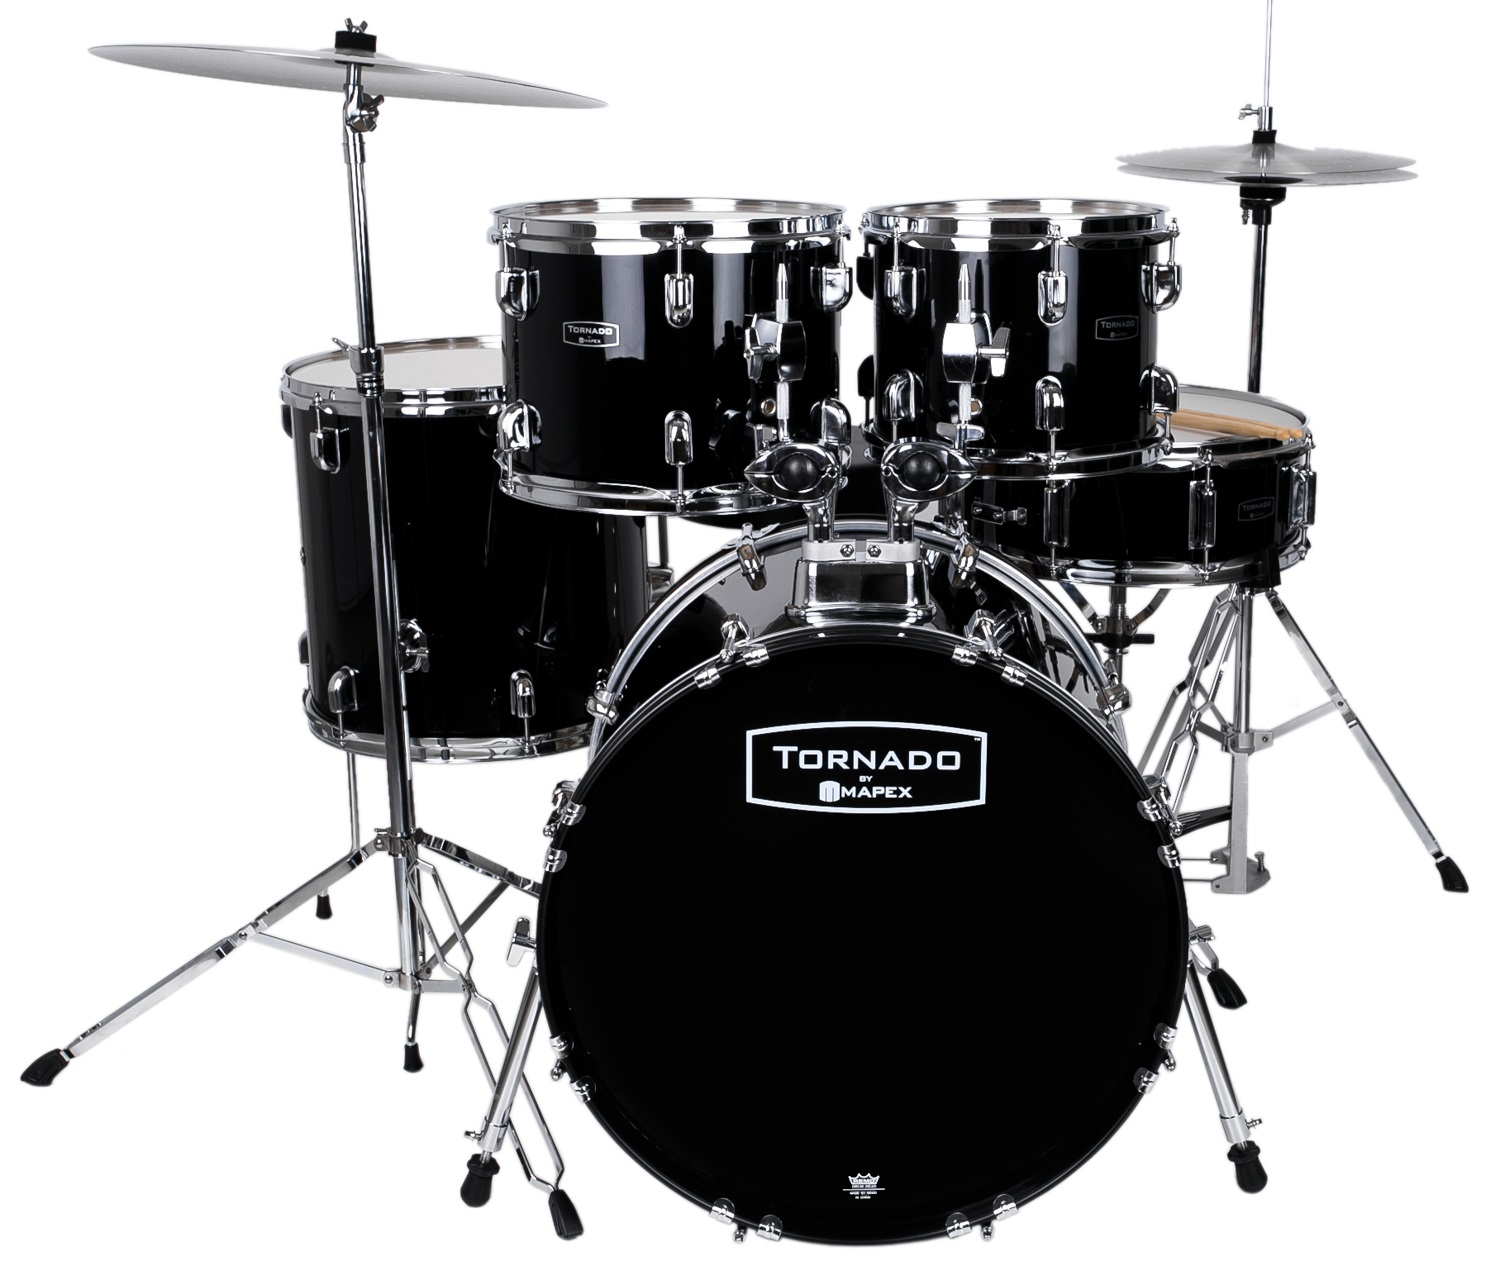 Tornado Rock Set Dark black NEW